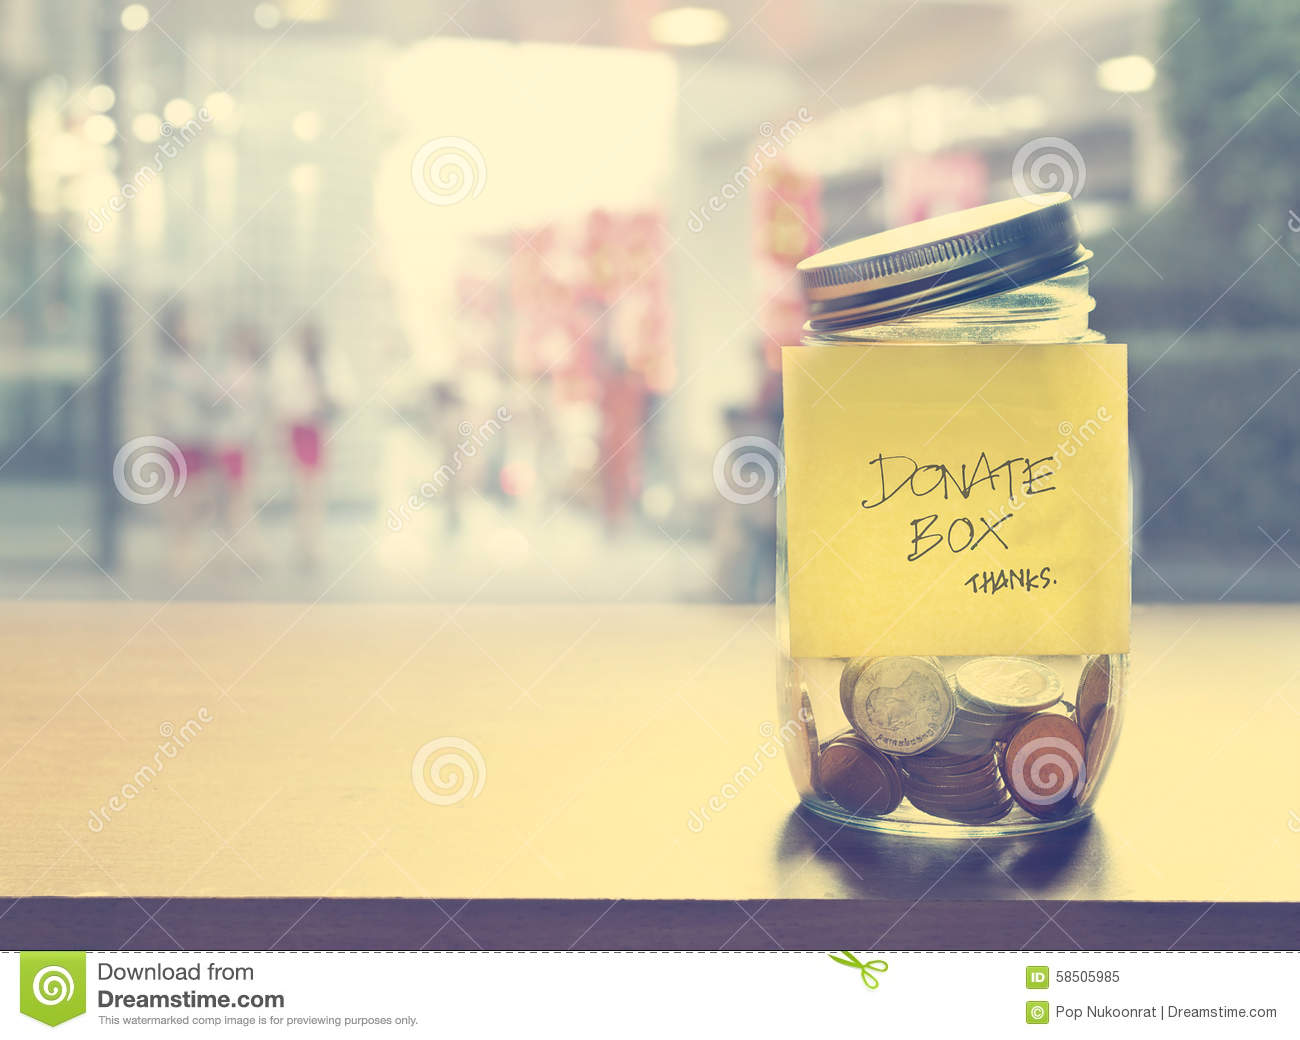 Donation box, coin in the glass bottle, vintage color tone